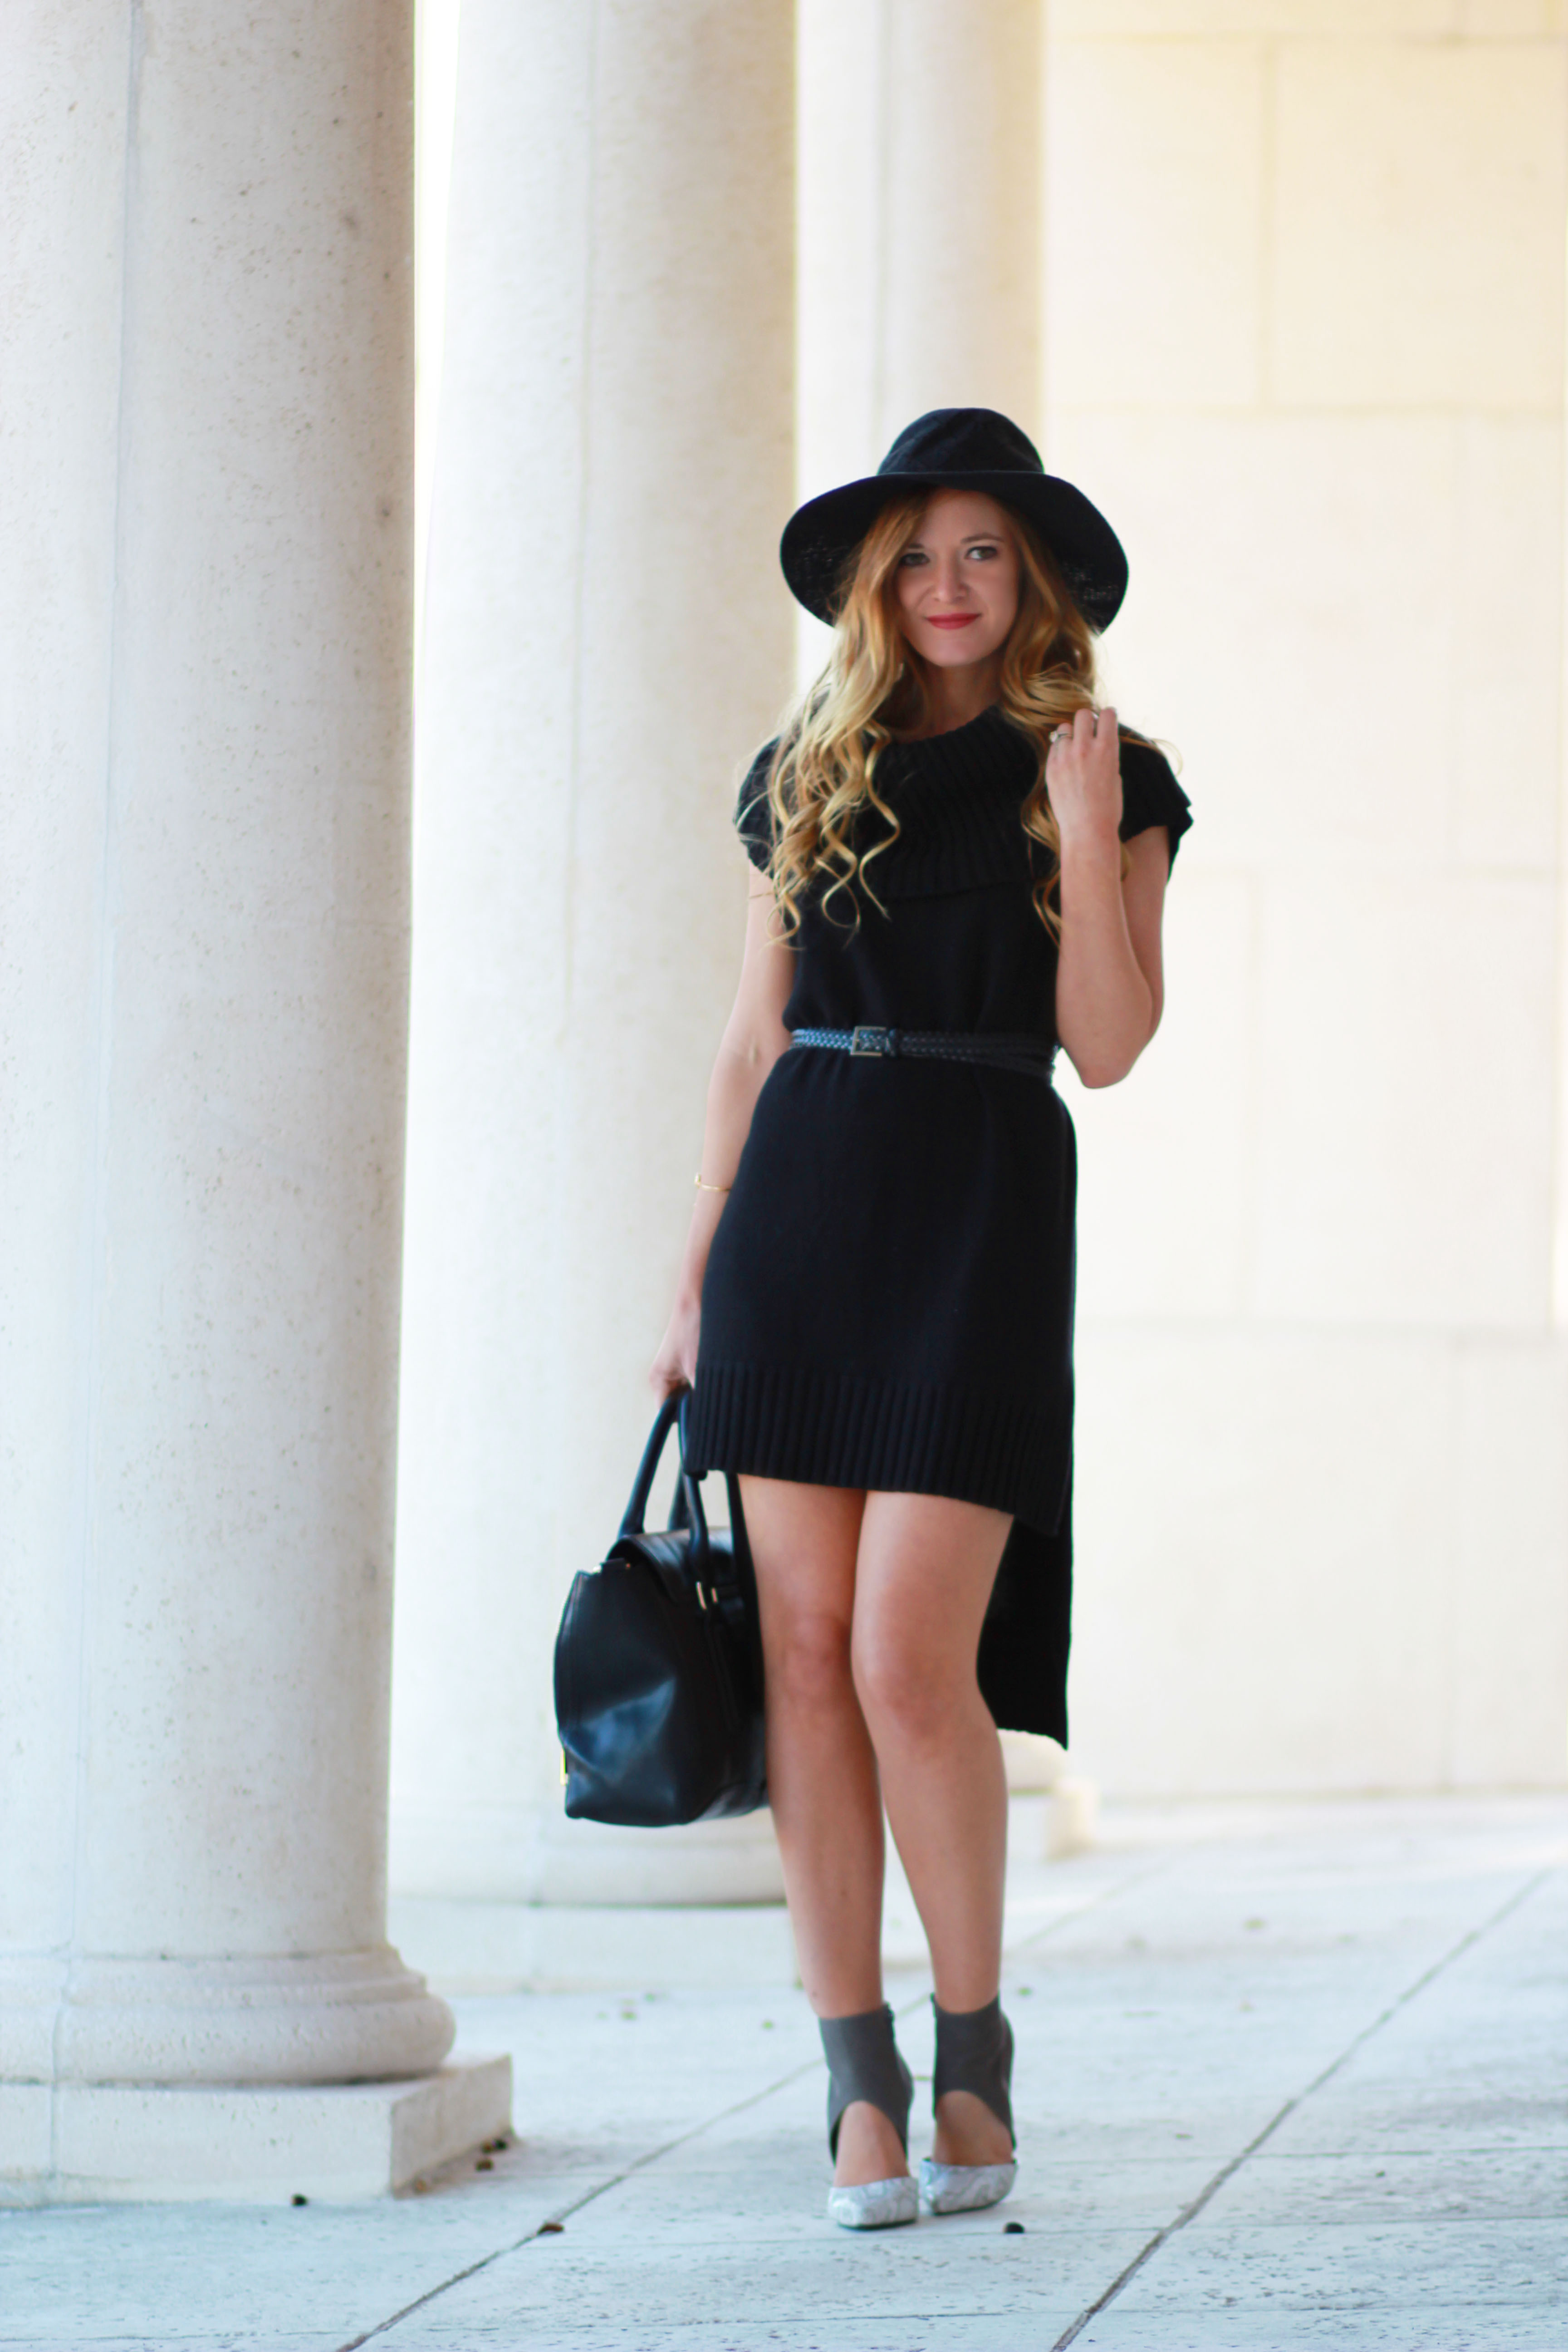 orlando, florida fashion blogger styles bcbgeneration sweater dress with steve madden snakeskin heels and free people hat for a winter outfit